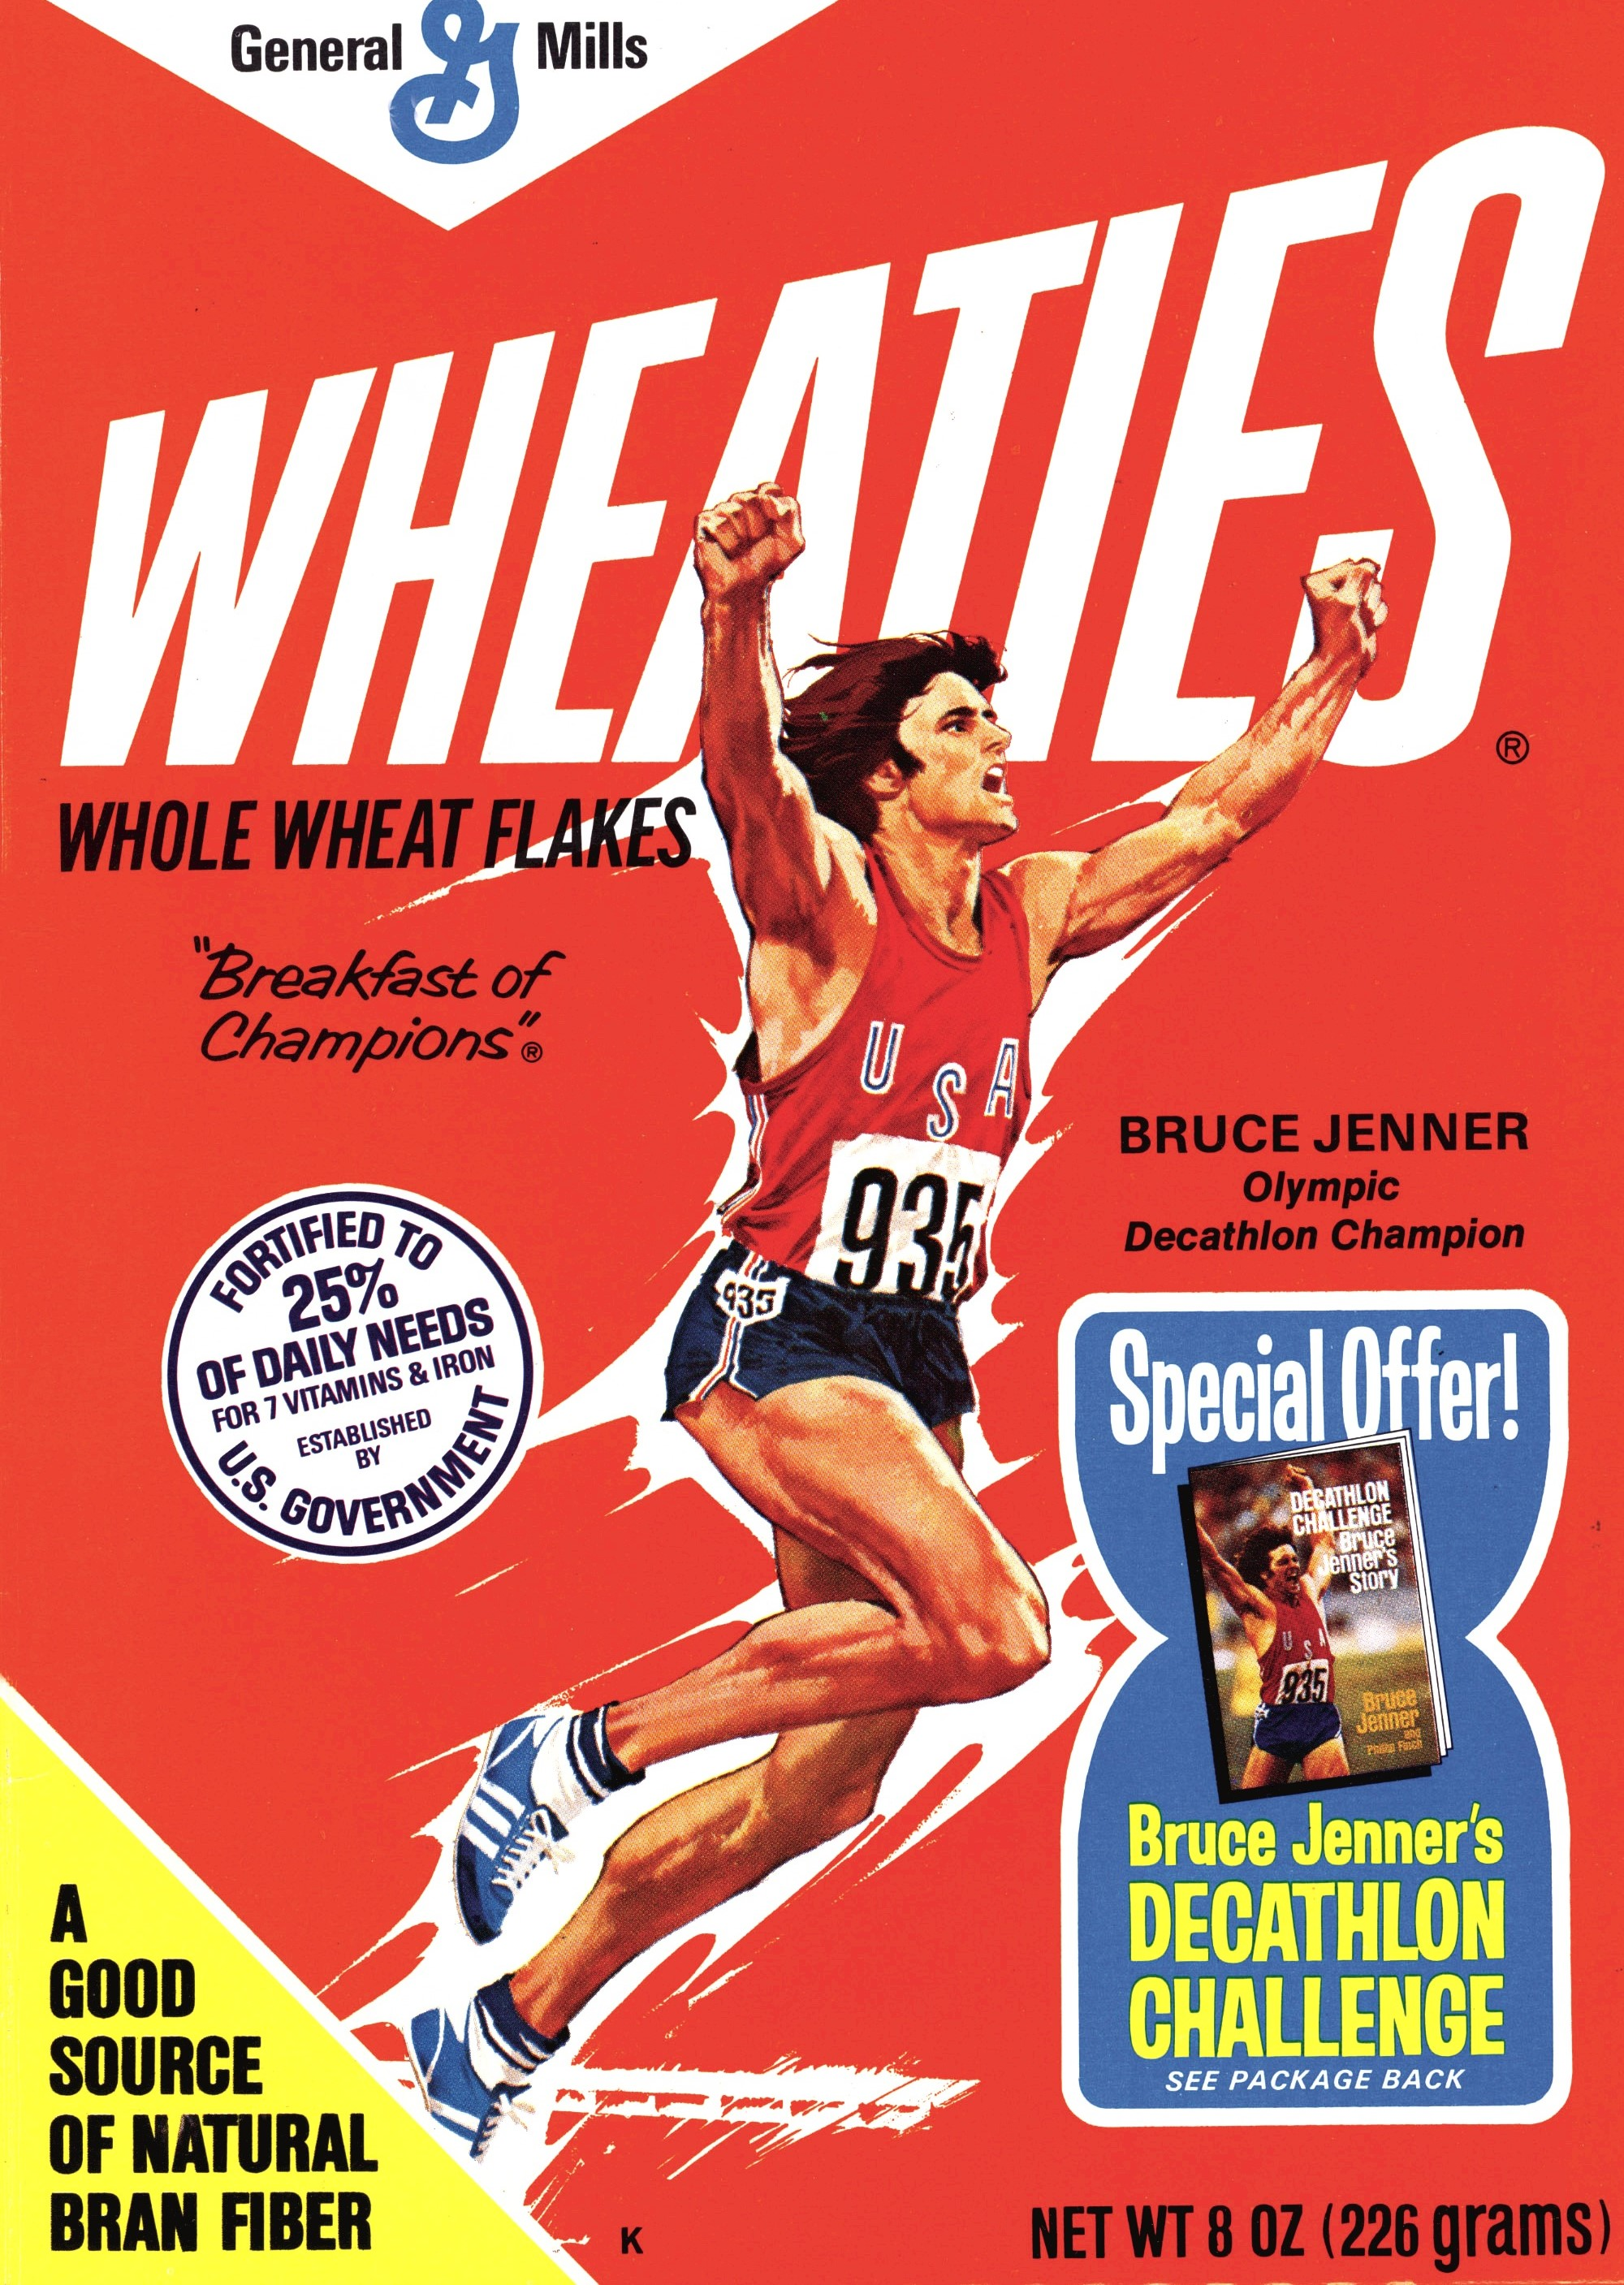 Bruce Jenner on the Wheaties box.